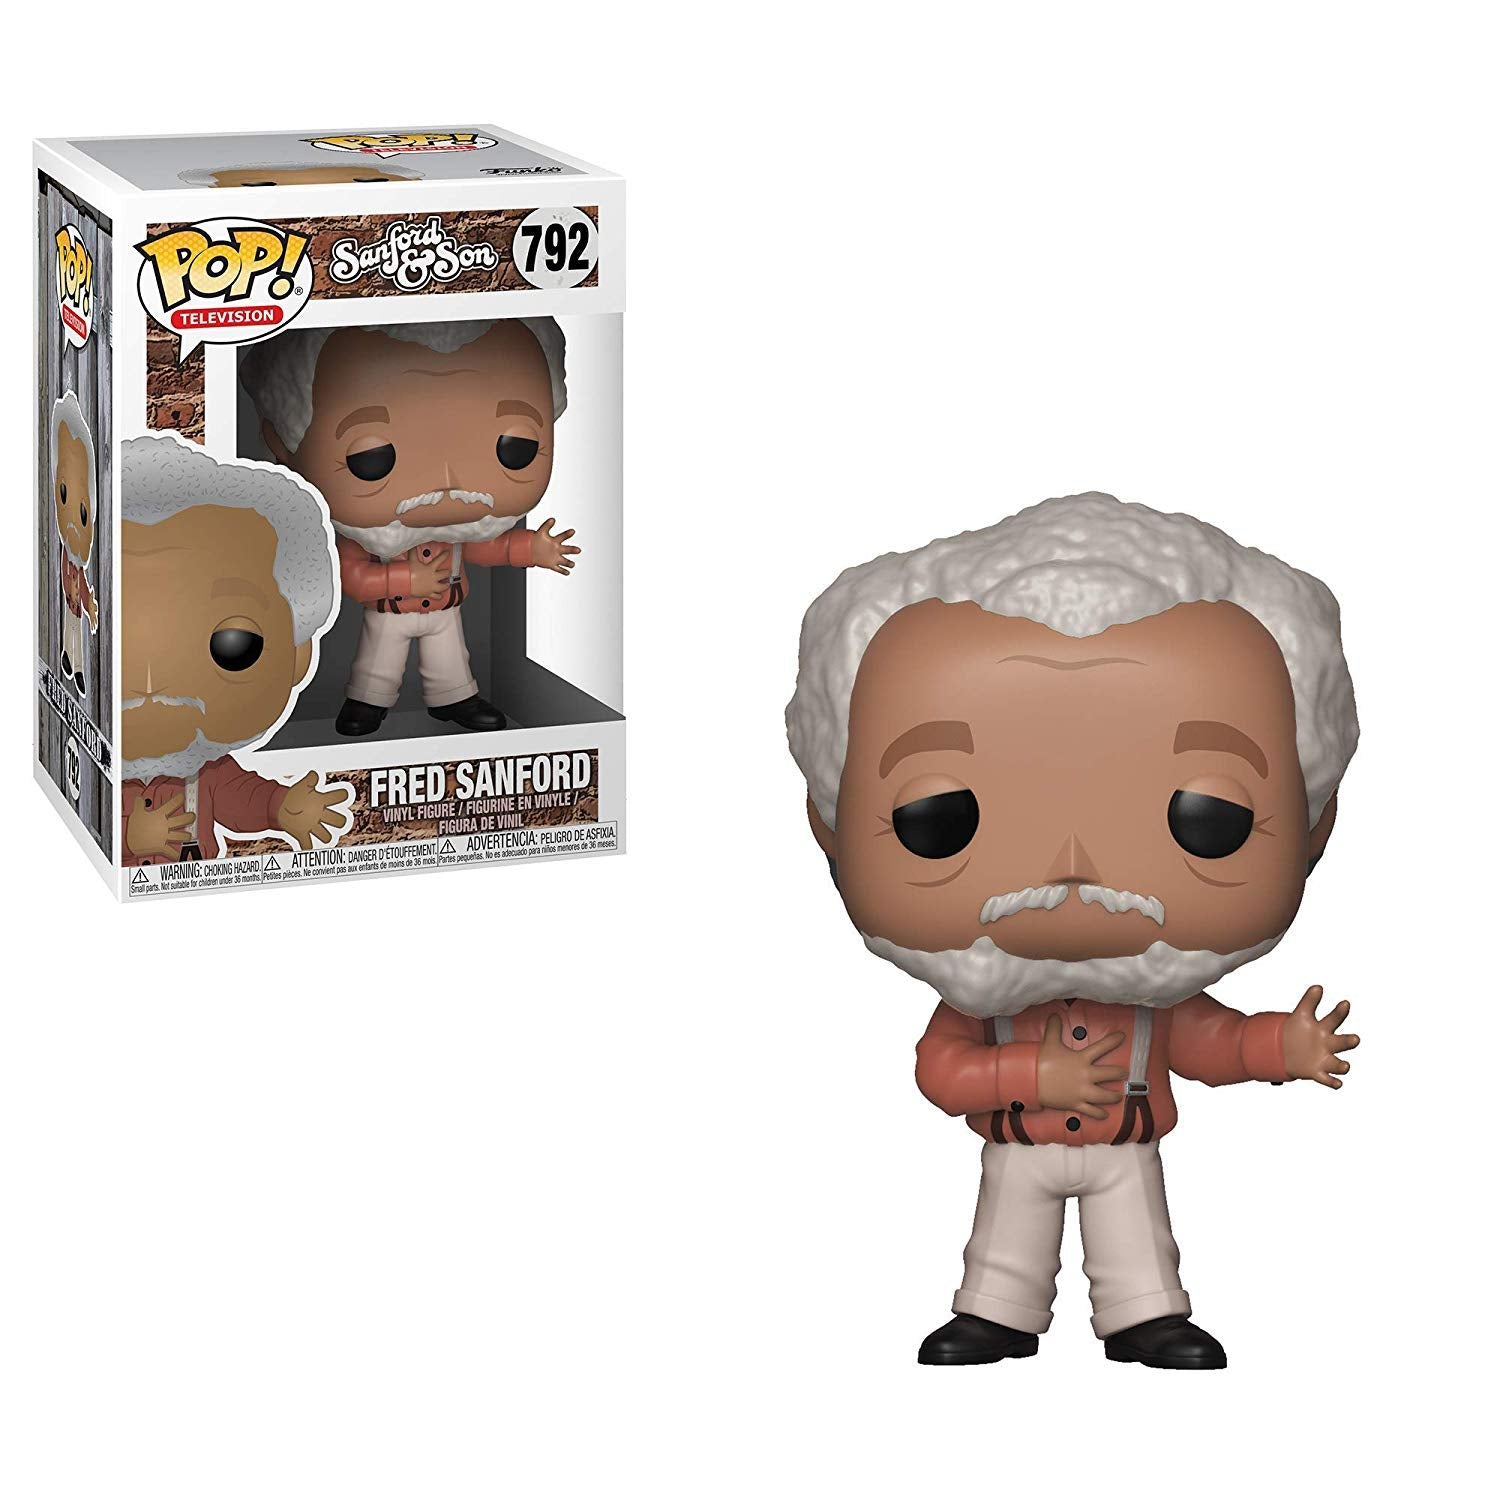 Sanford and Son Pop! Vinyl Figure Fred Sanford [792]